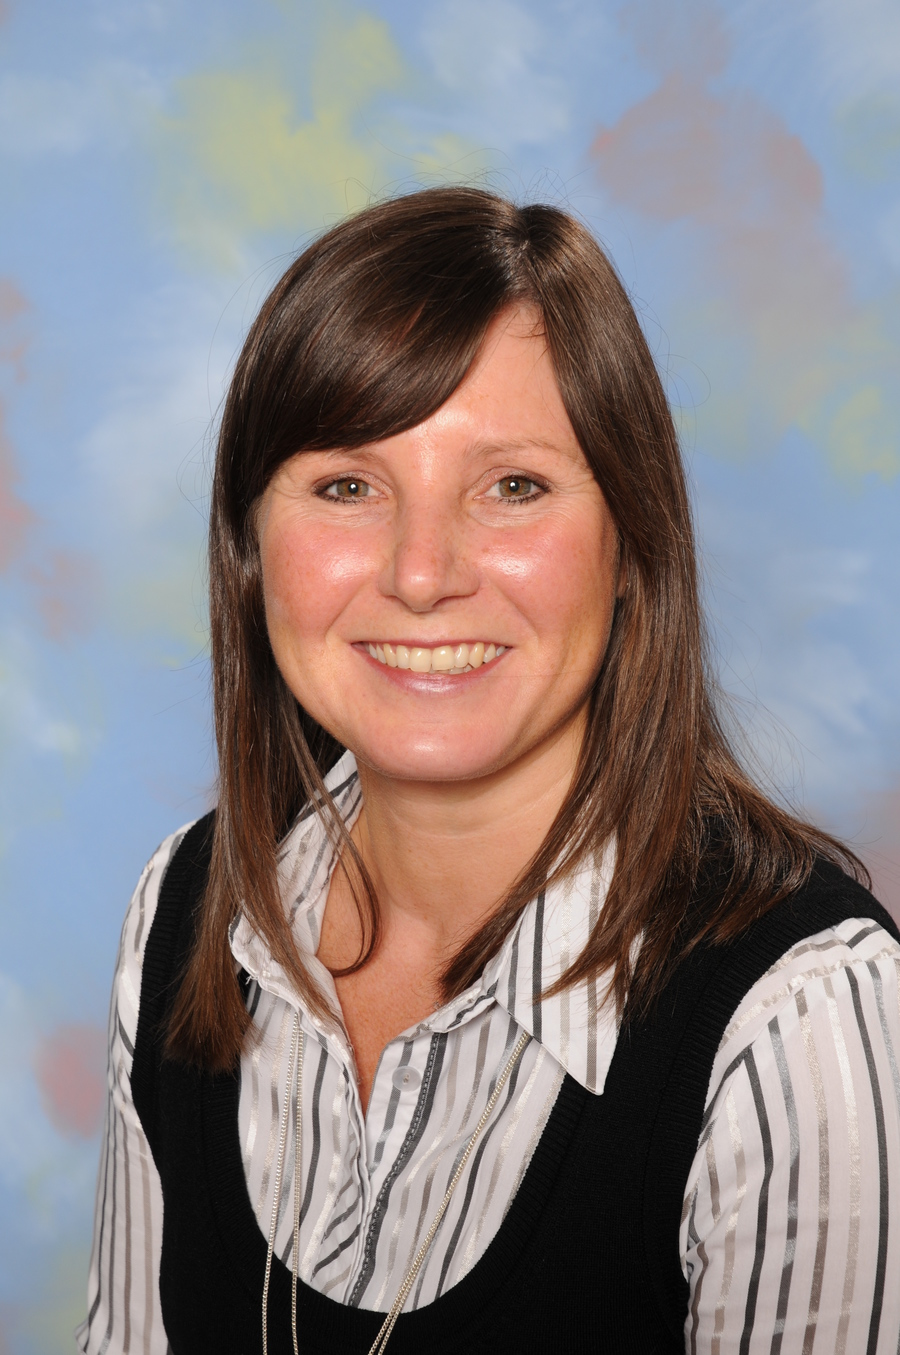 Susan Marshall, School Business Manager